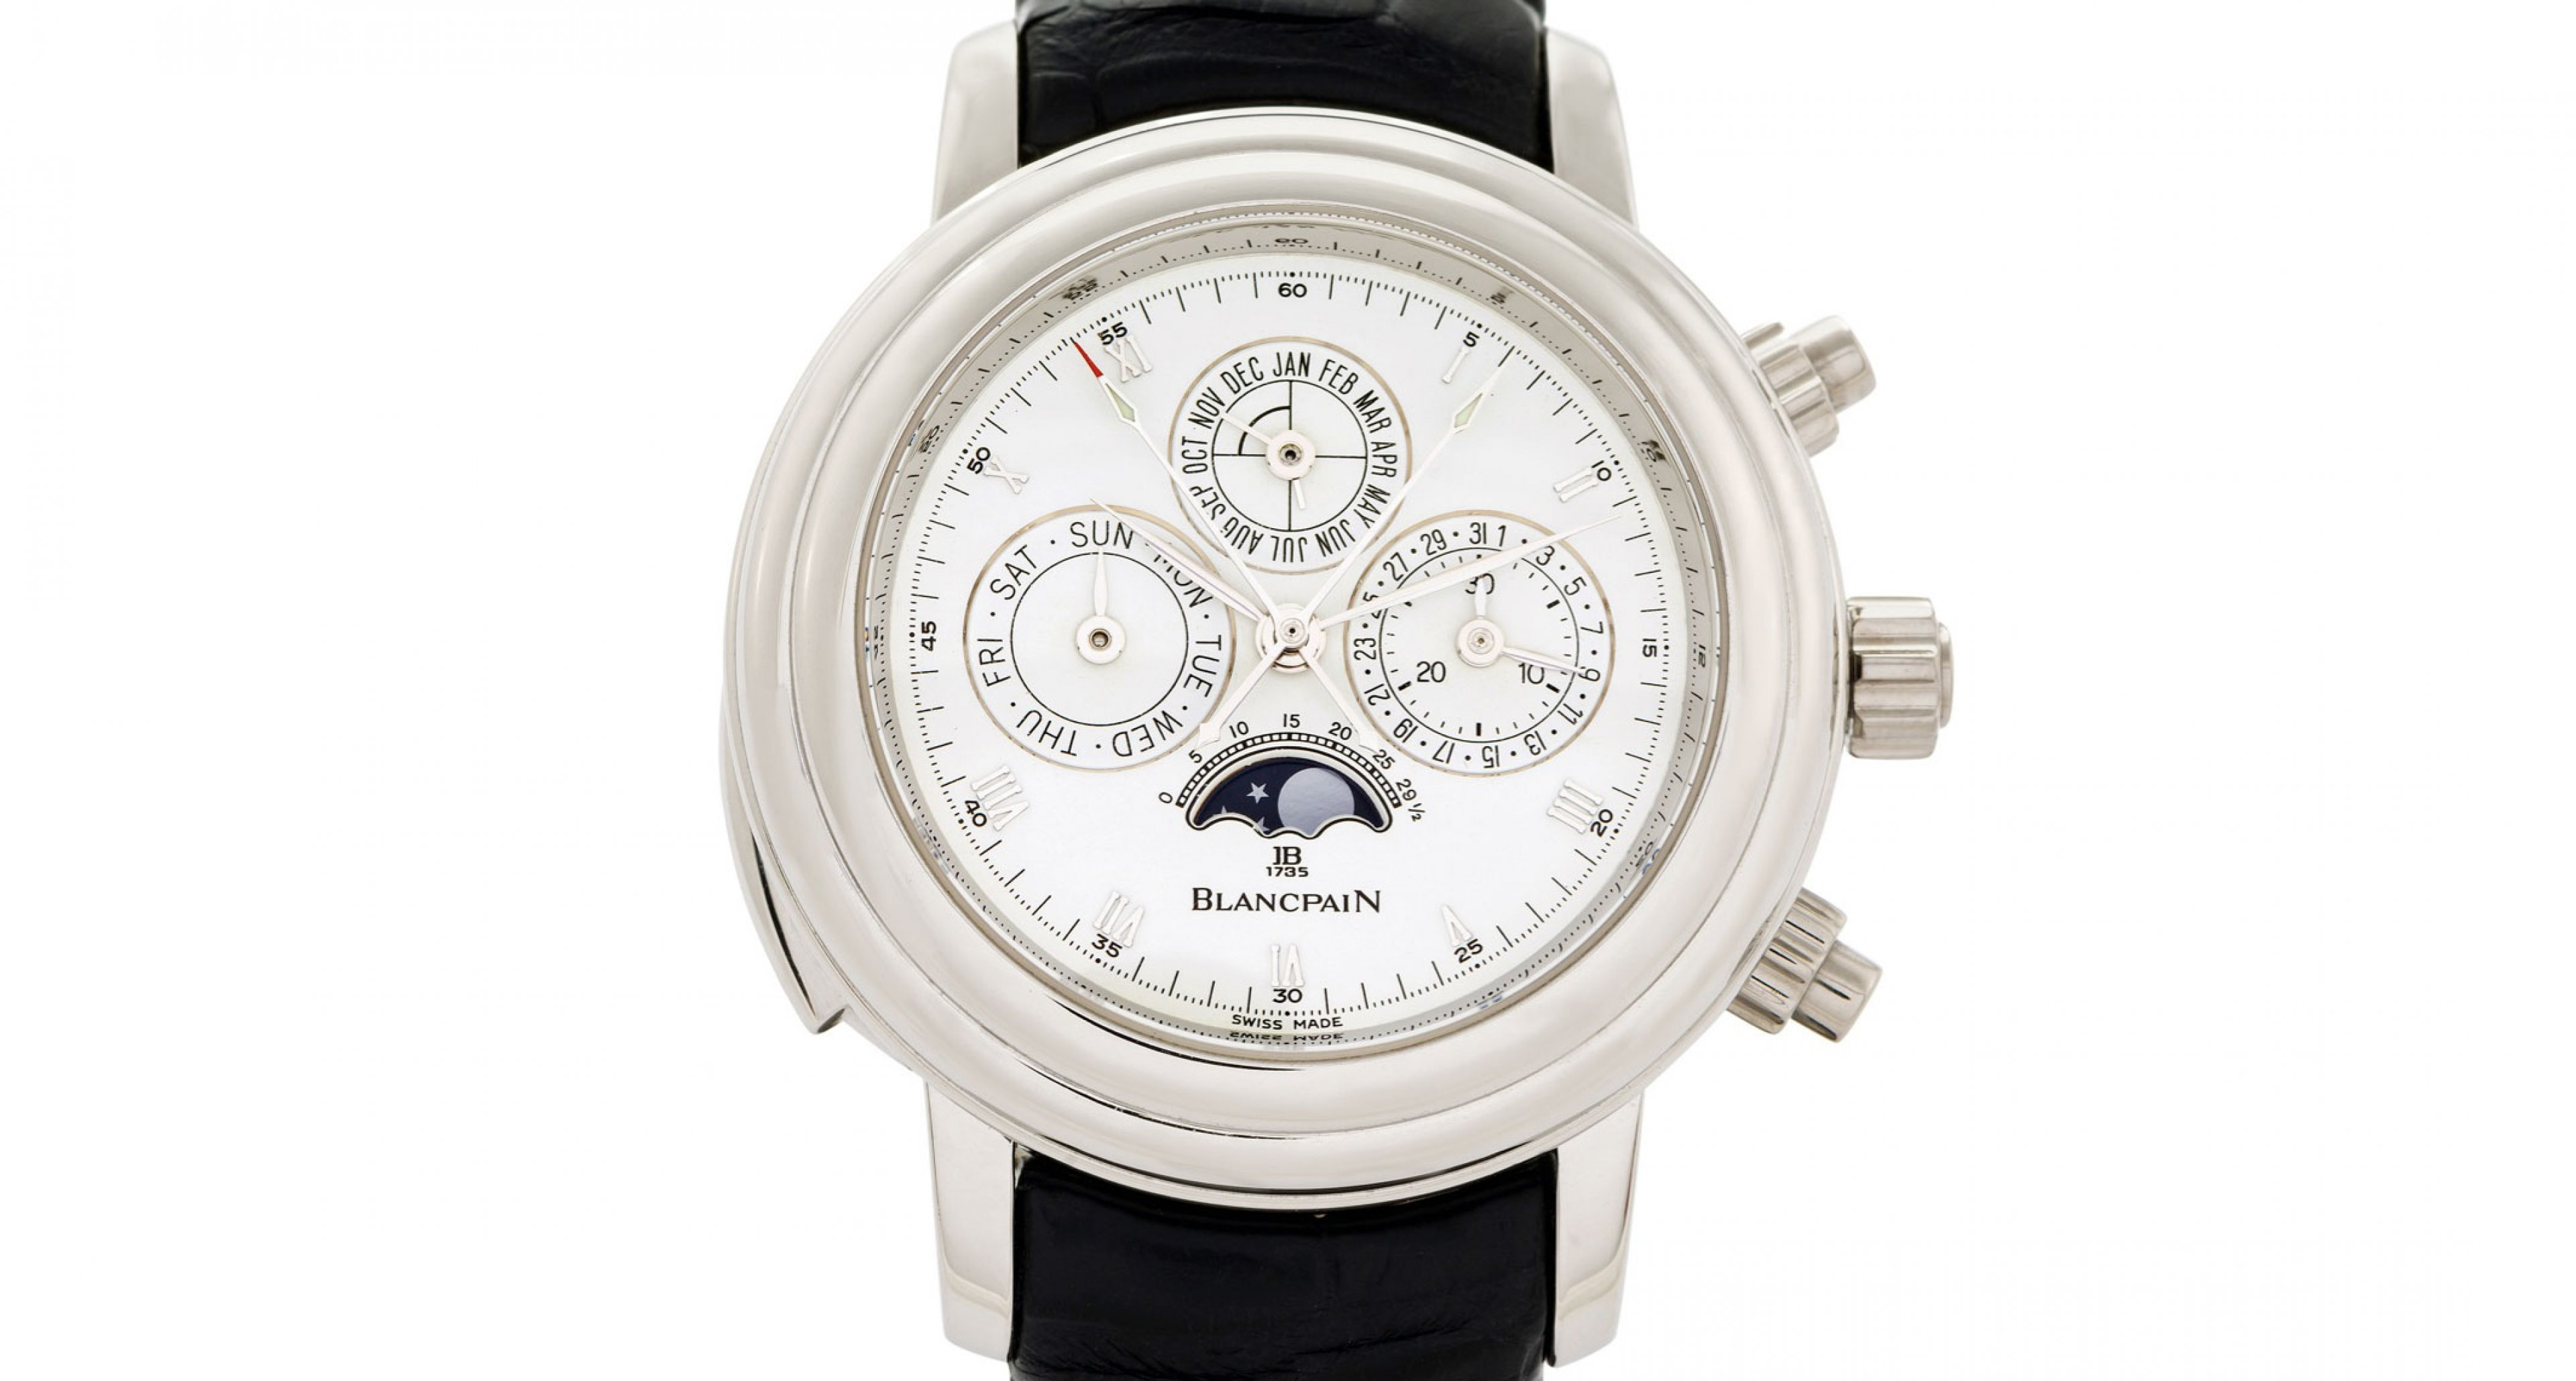 A upcomming brand? This Blancpain Grande Complication was also succesfully sold by Antiquorum